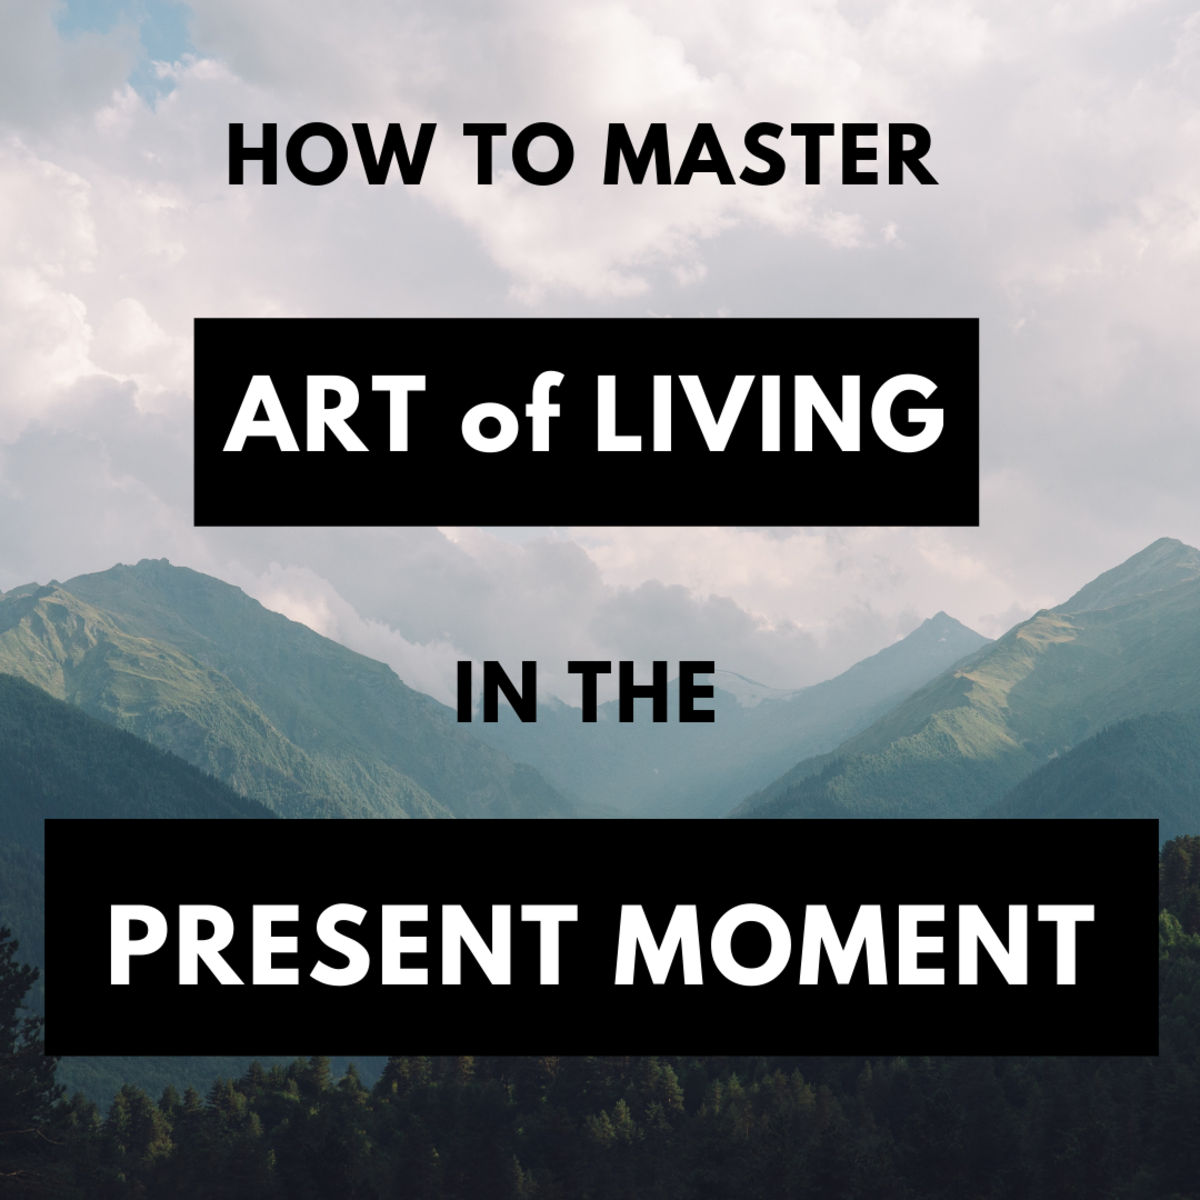 Master the art of living in the present moment.